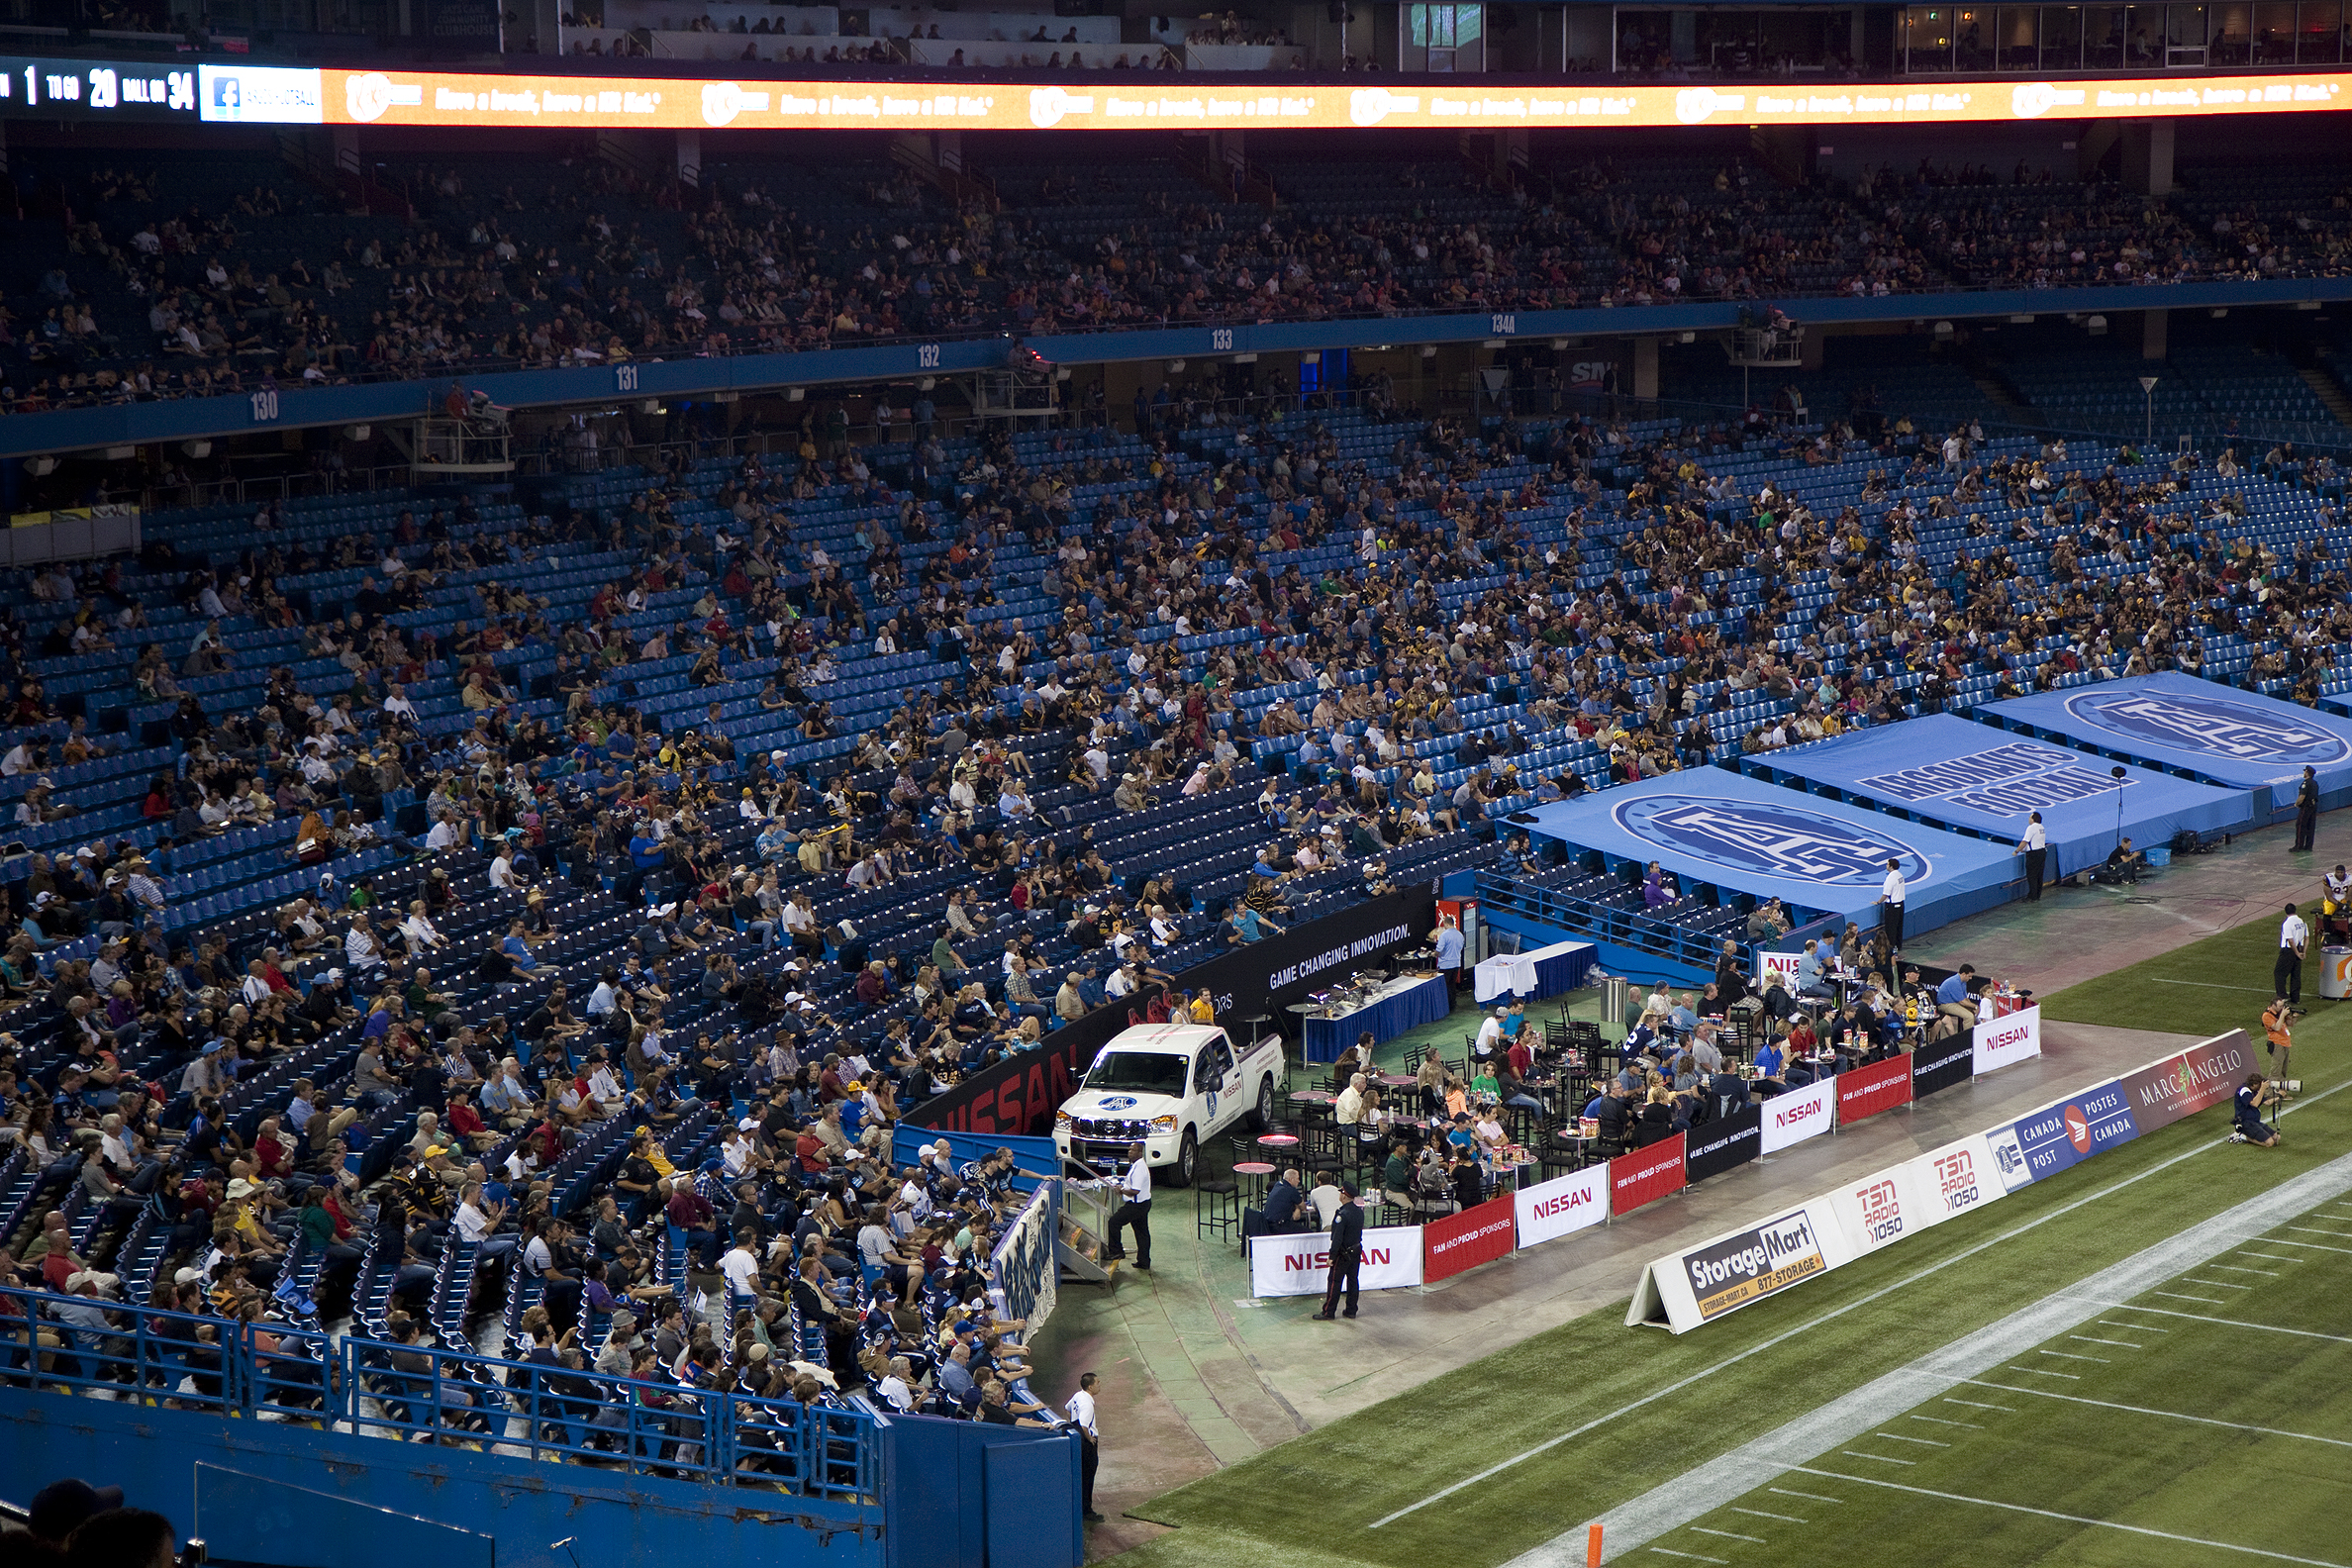 argos crowd